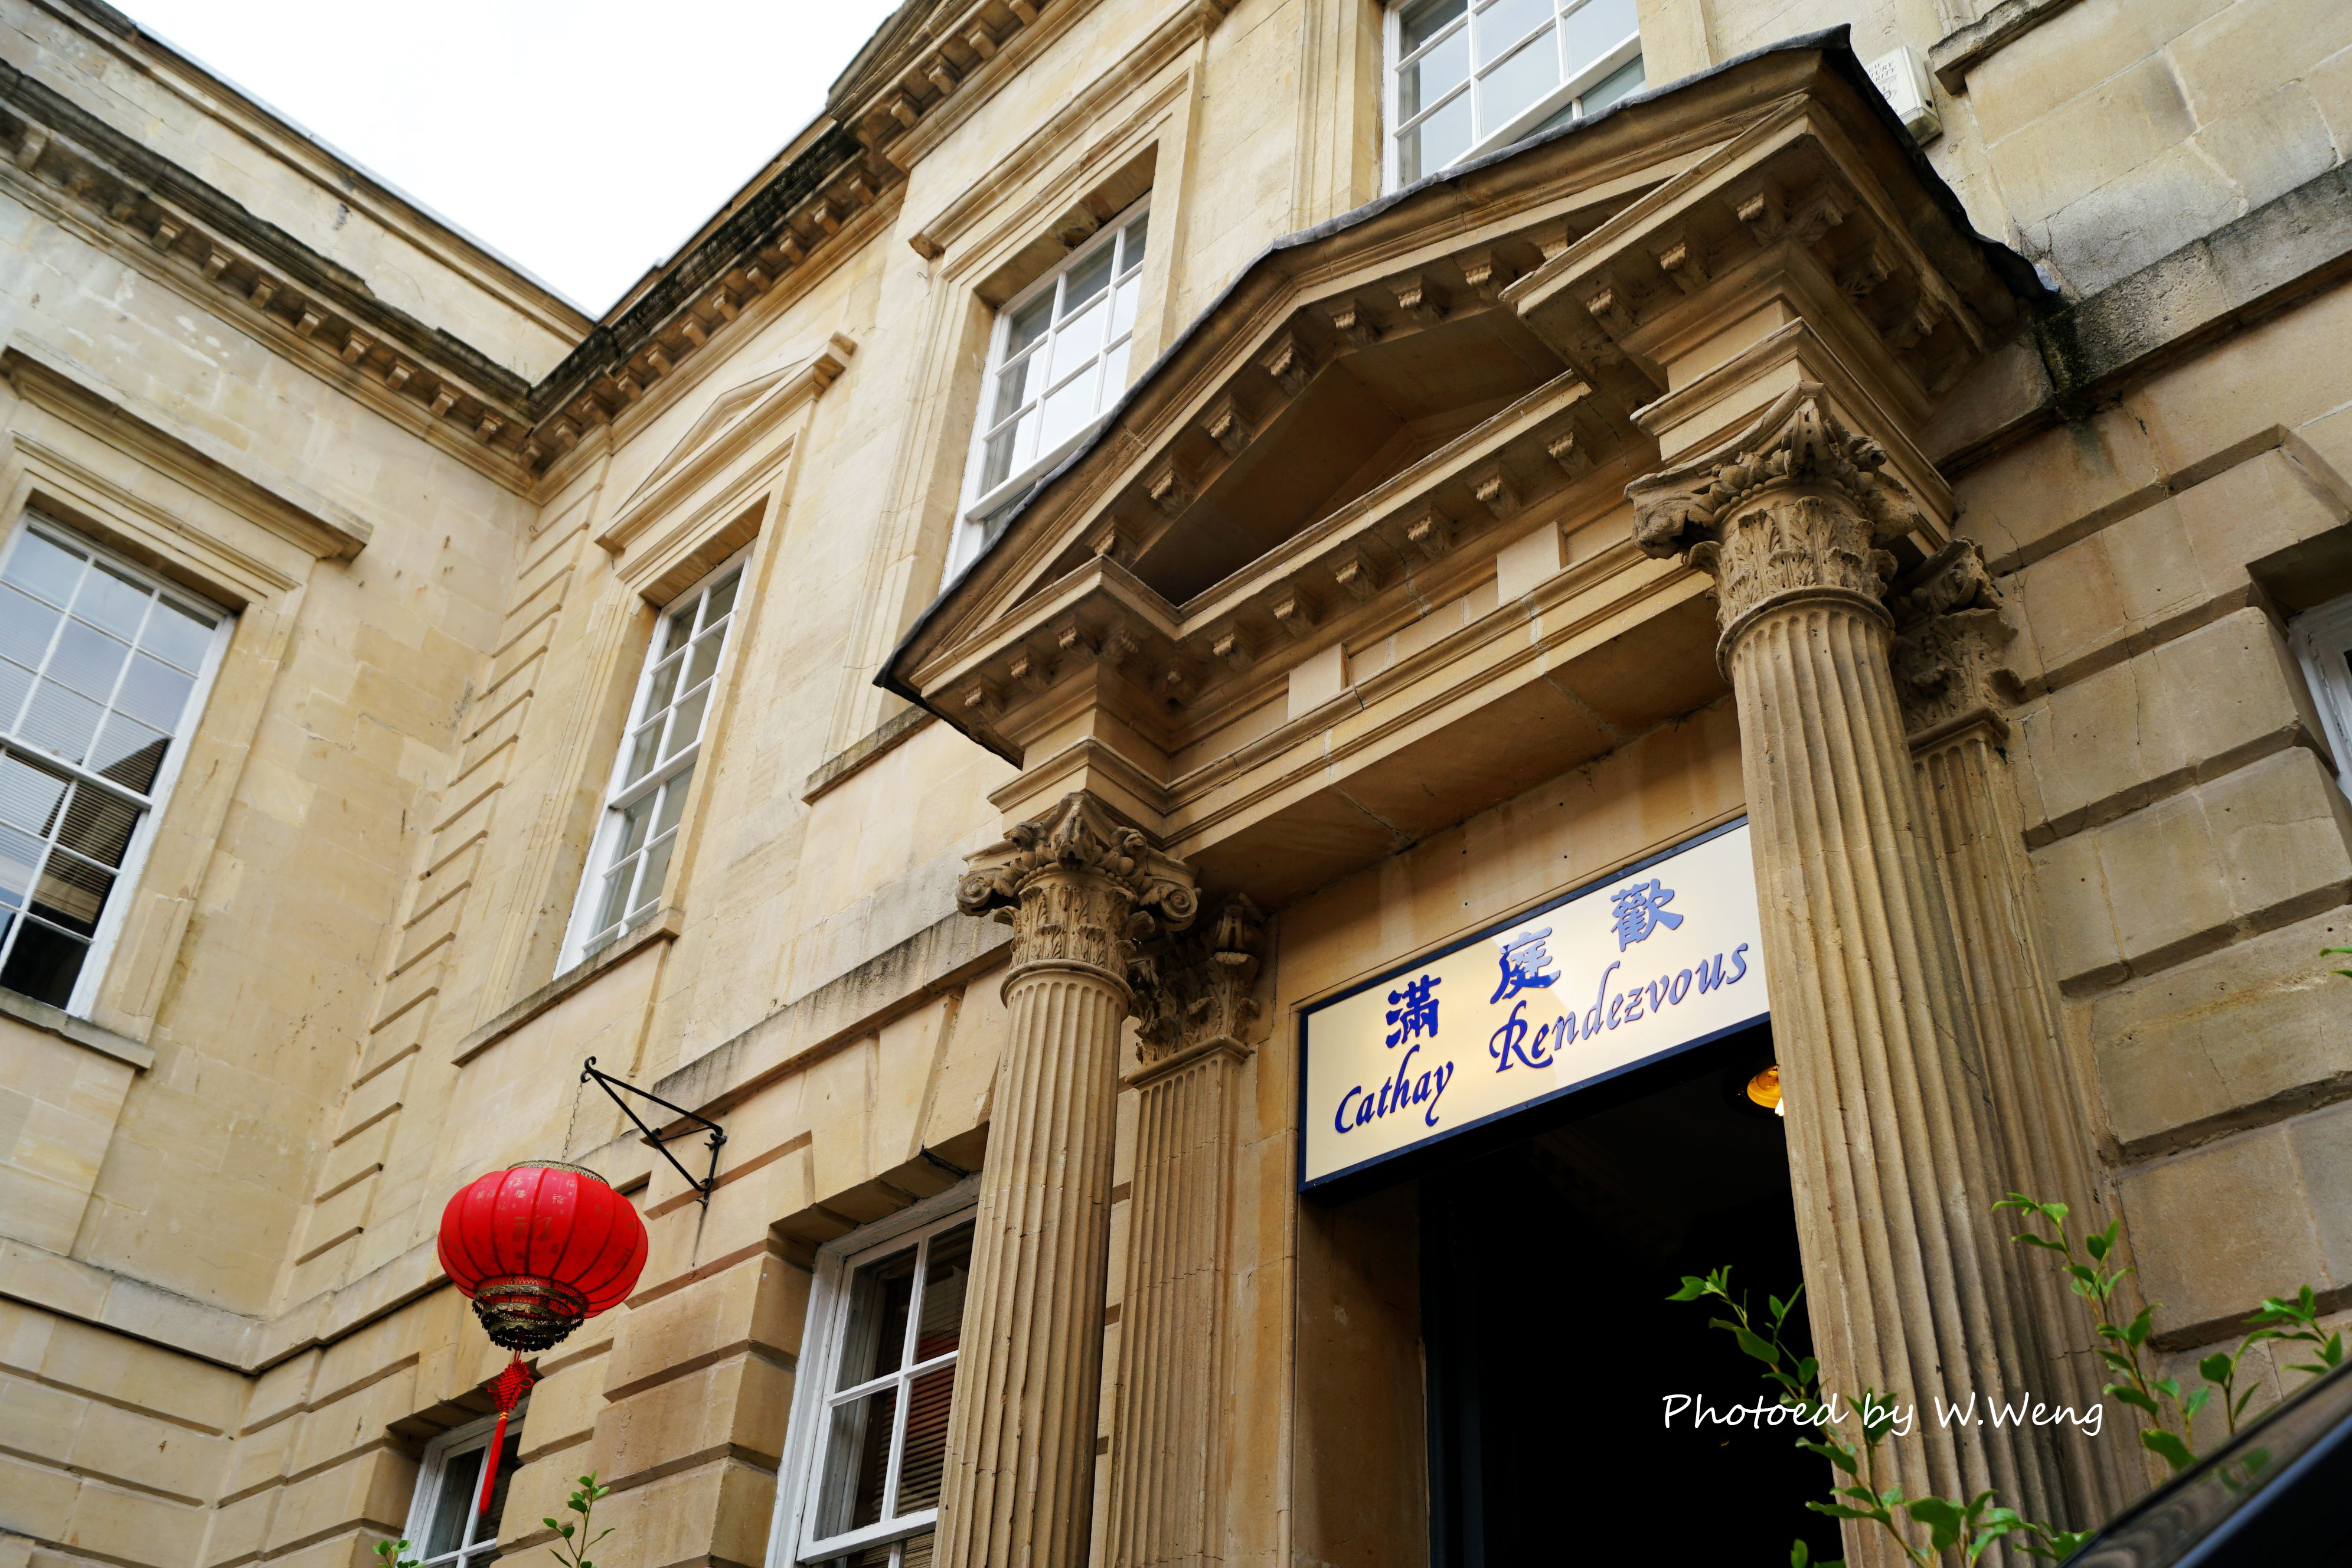 Cathay Rendezvous / Best Chinese Restaurant in Bristol